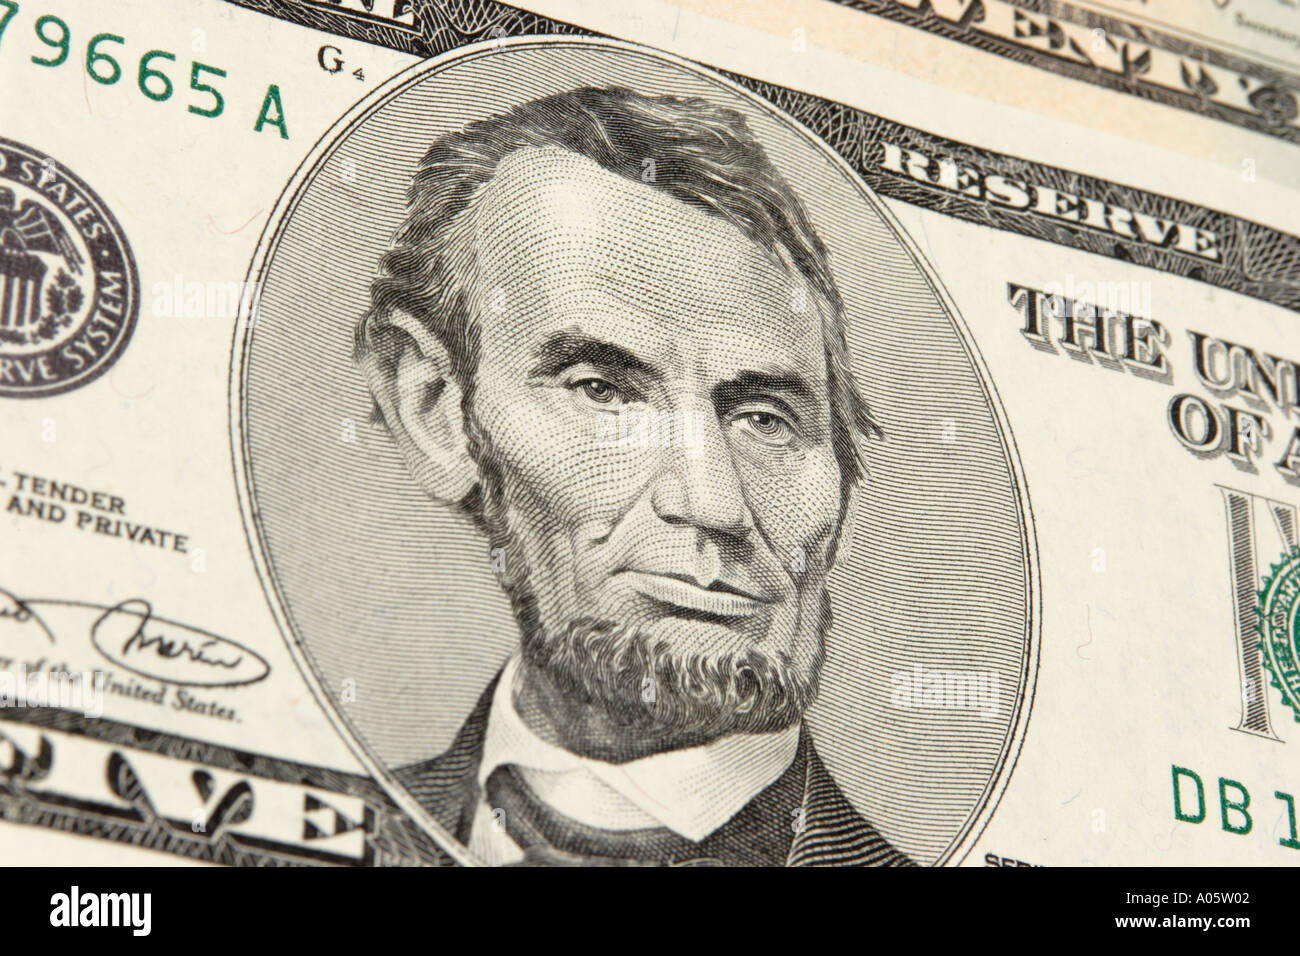 Money Usa American Currency Face Of Abraham Lincoln On